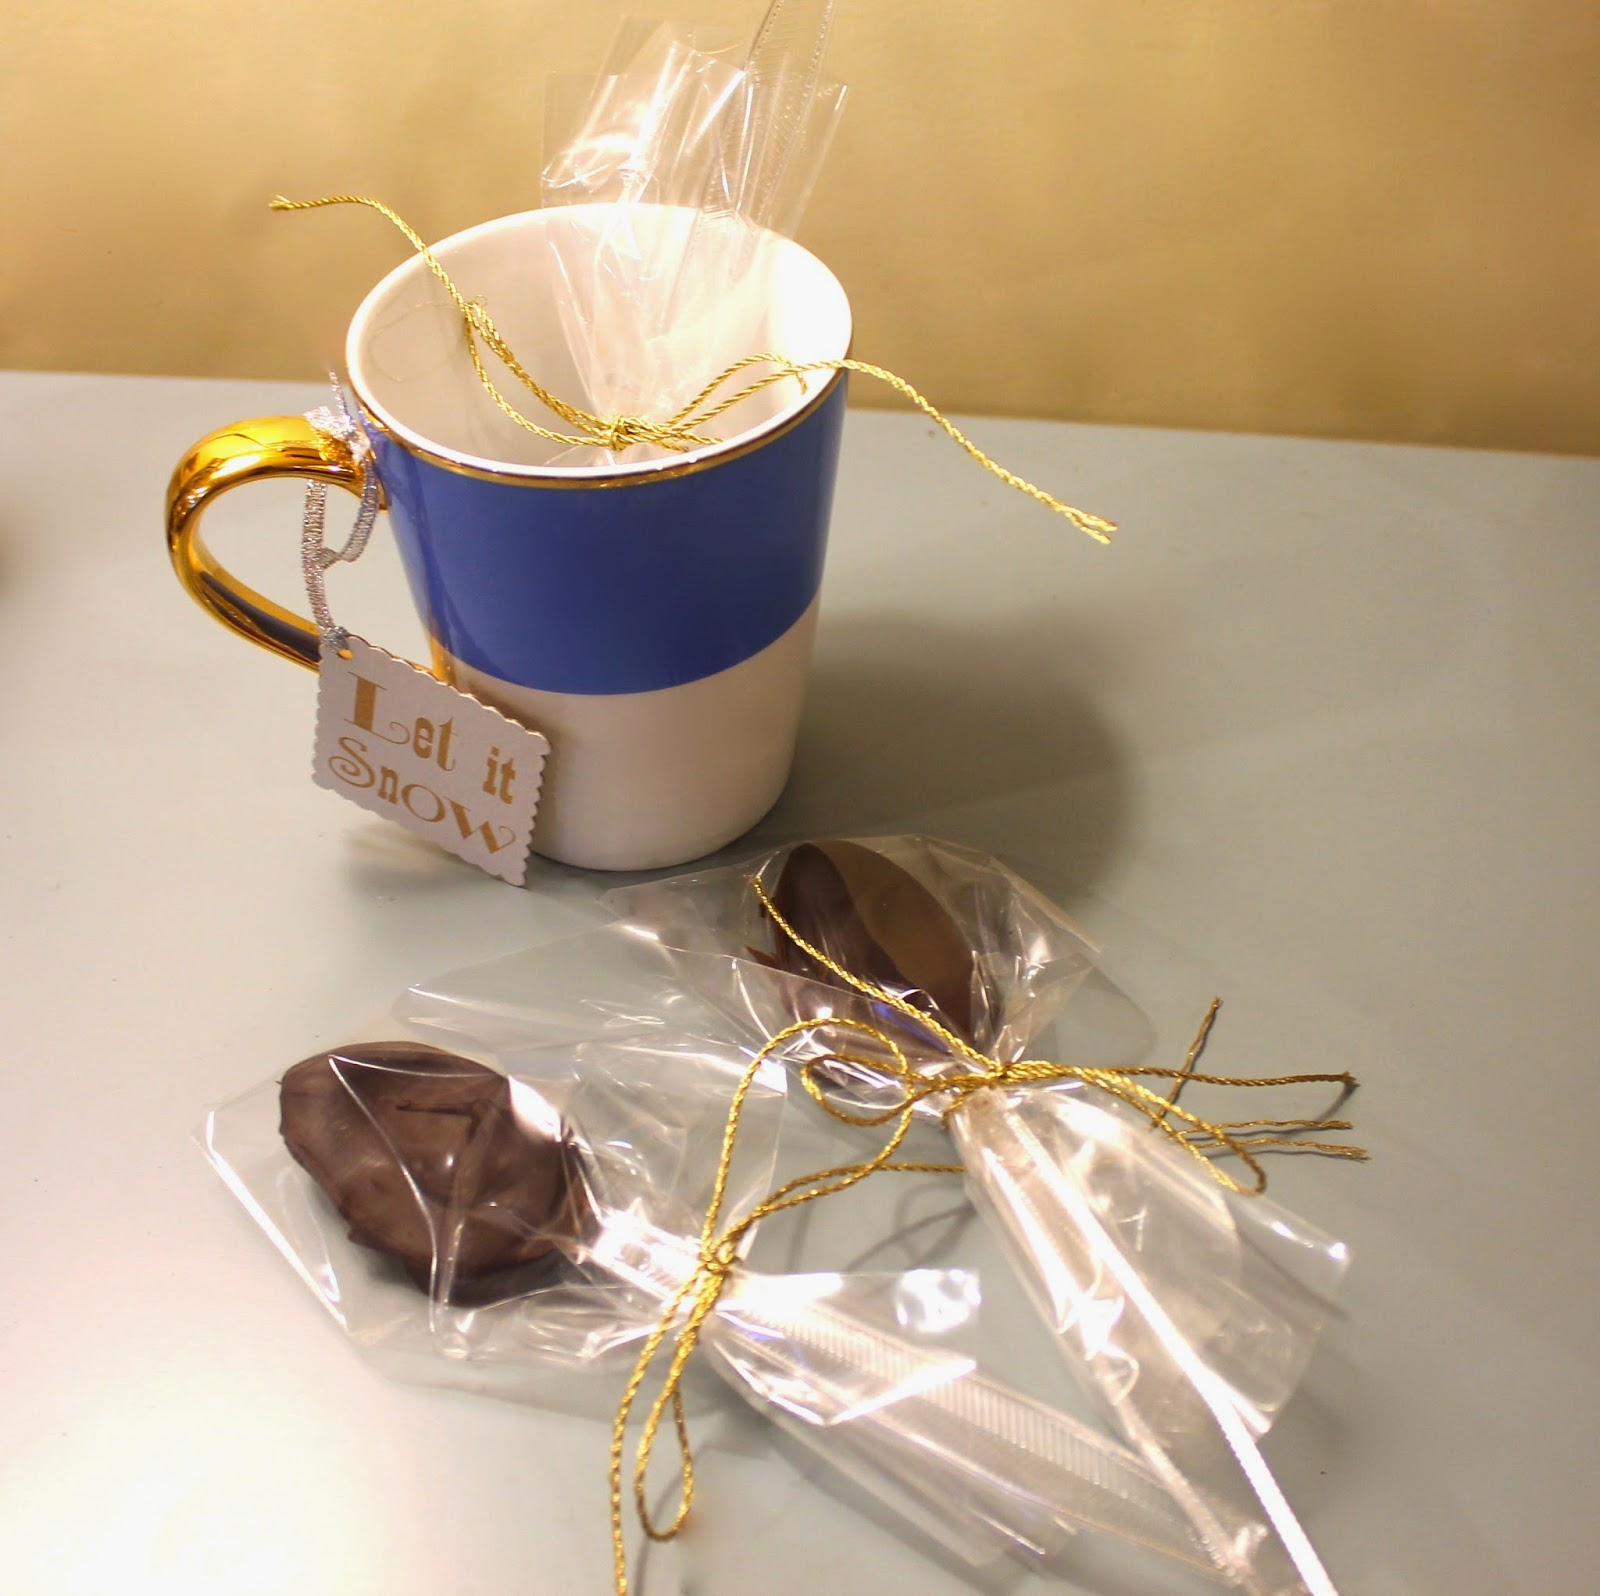 easy DIY Christmas gift: chocolate dipped cocoa spoons